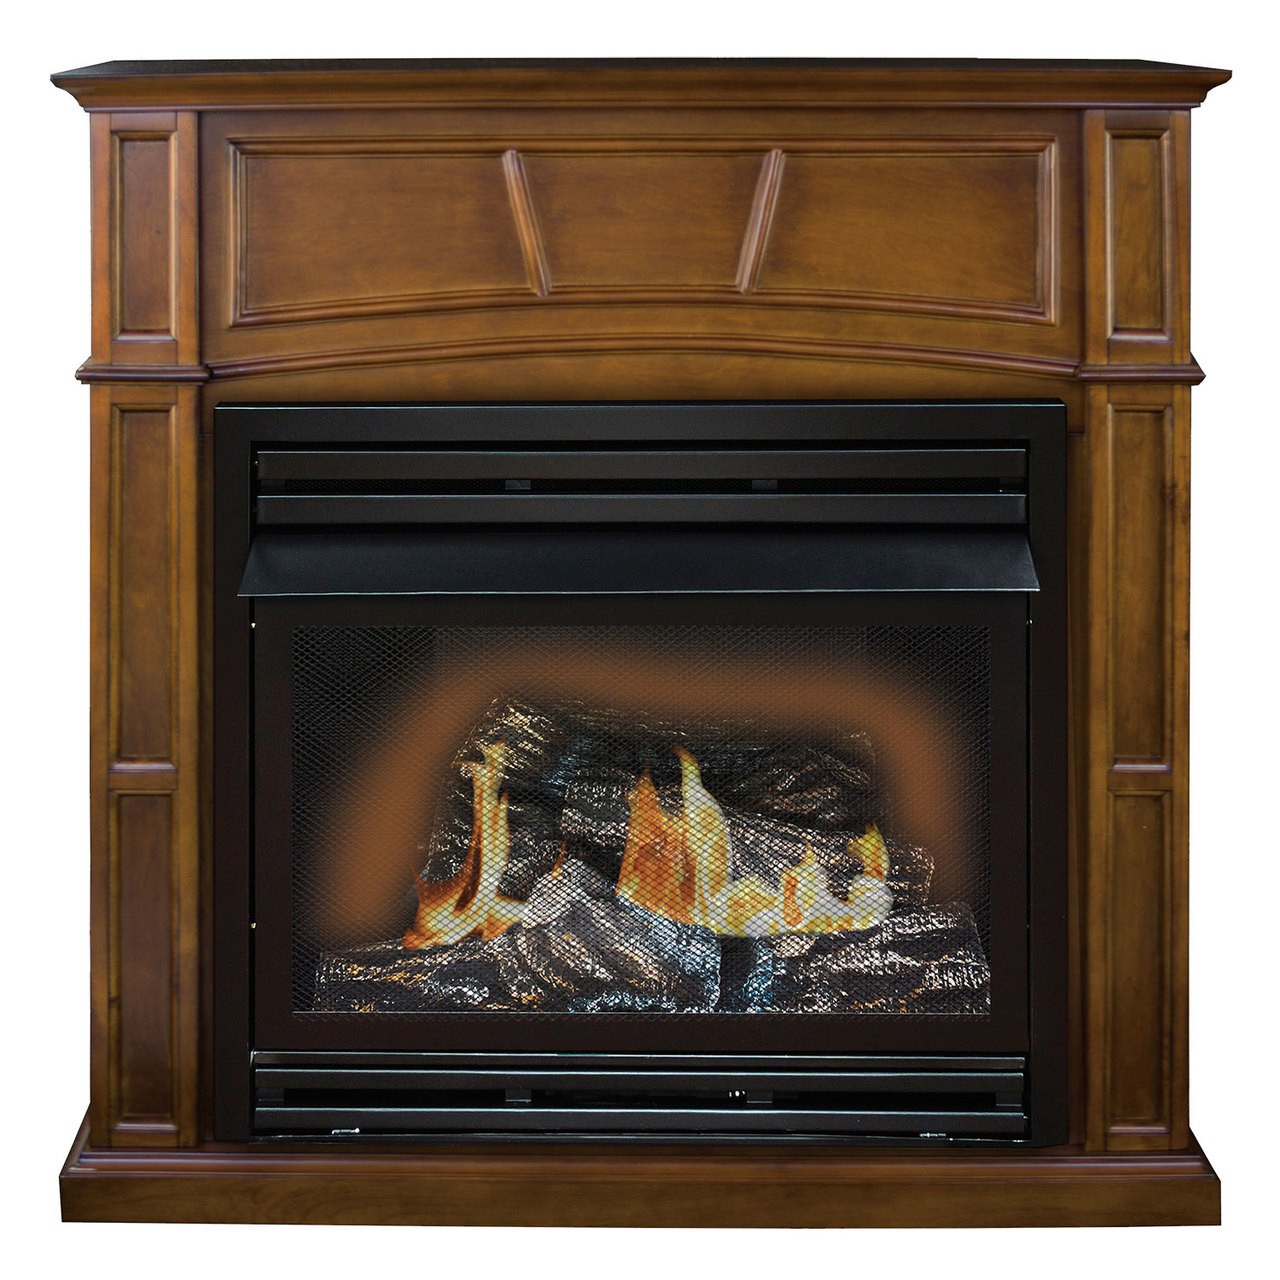 Btu Gas Fireplace Comfort Glow Gfd3281r The Savannah Remote Controlled Vent Free Gas Fireplace 30 000 Btu